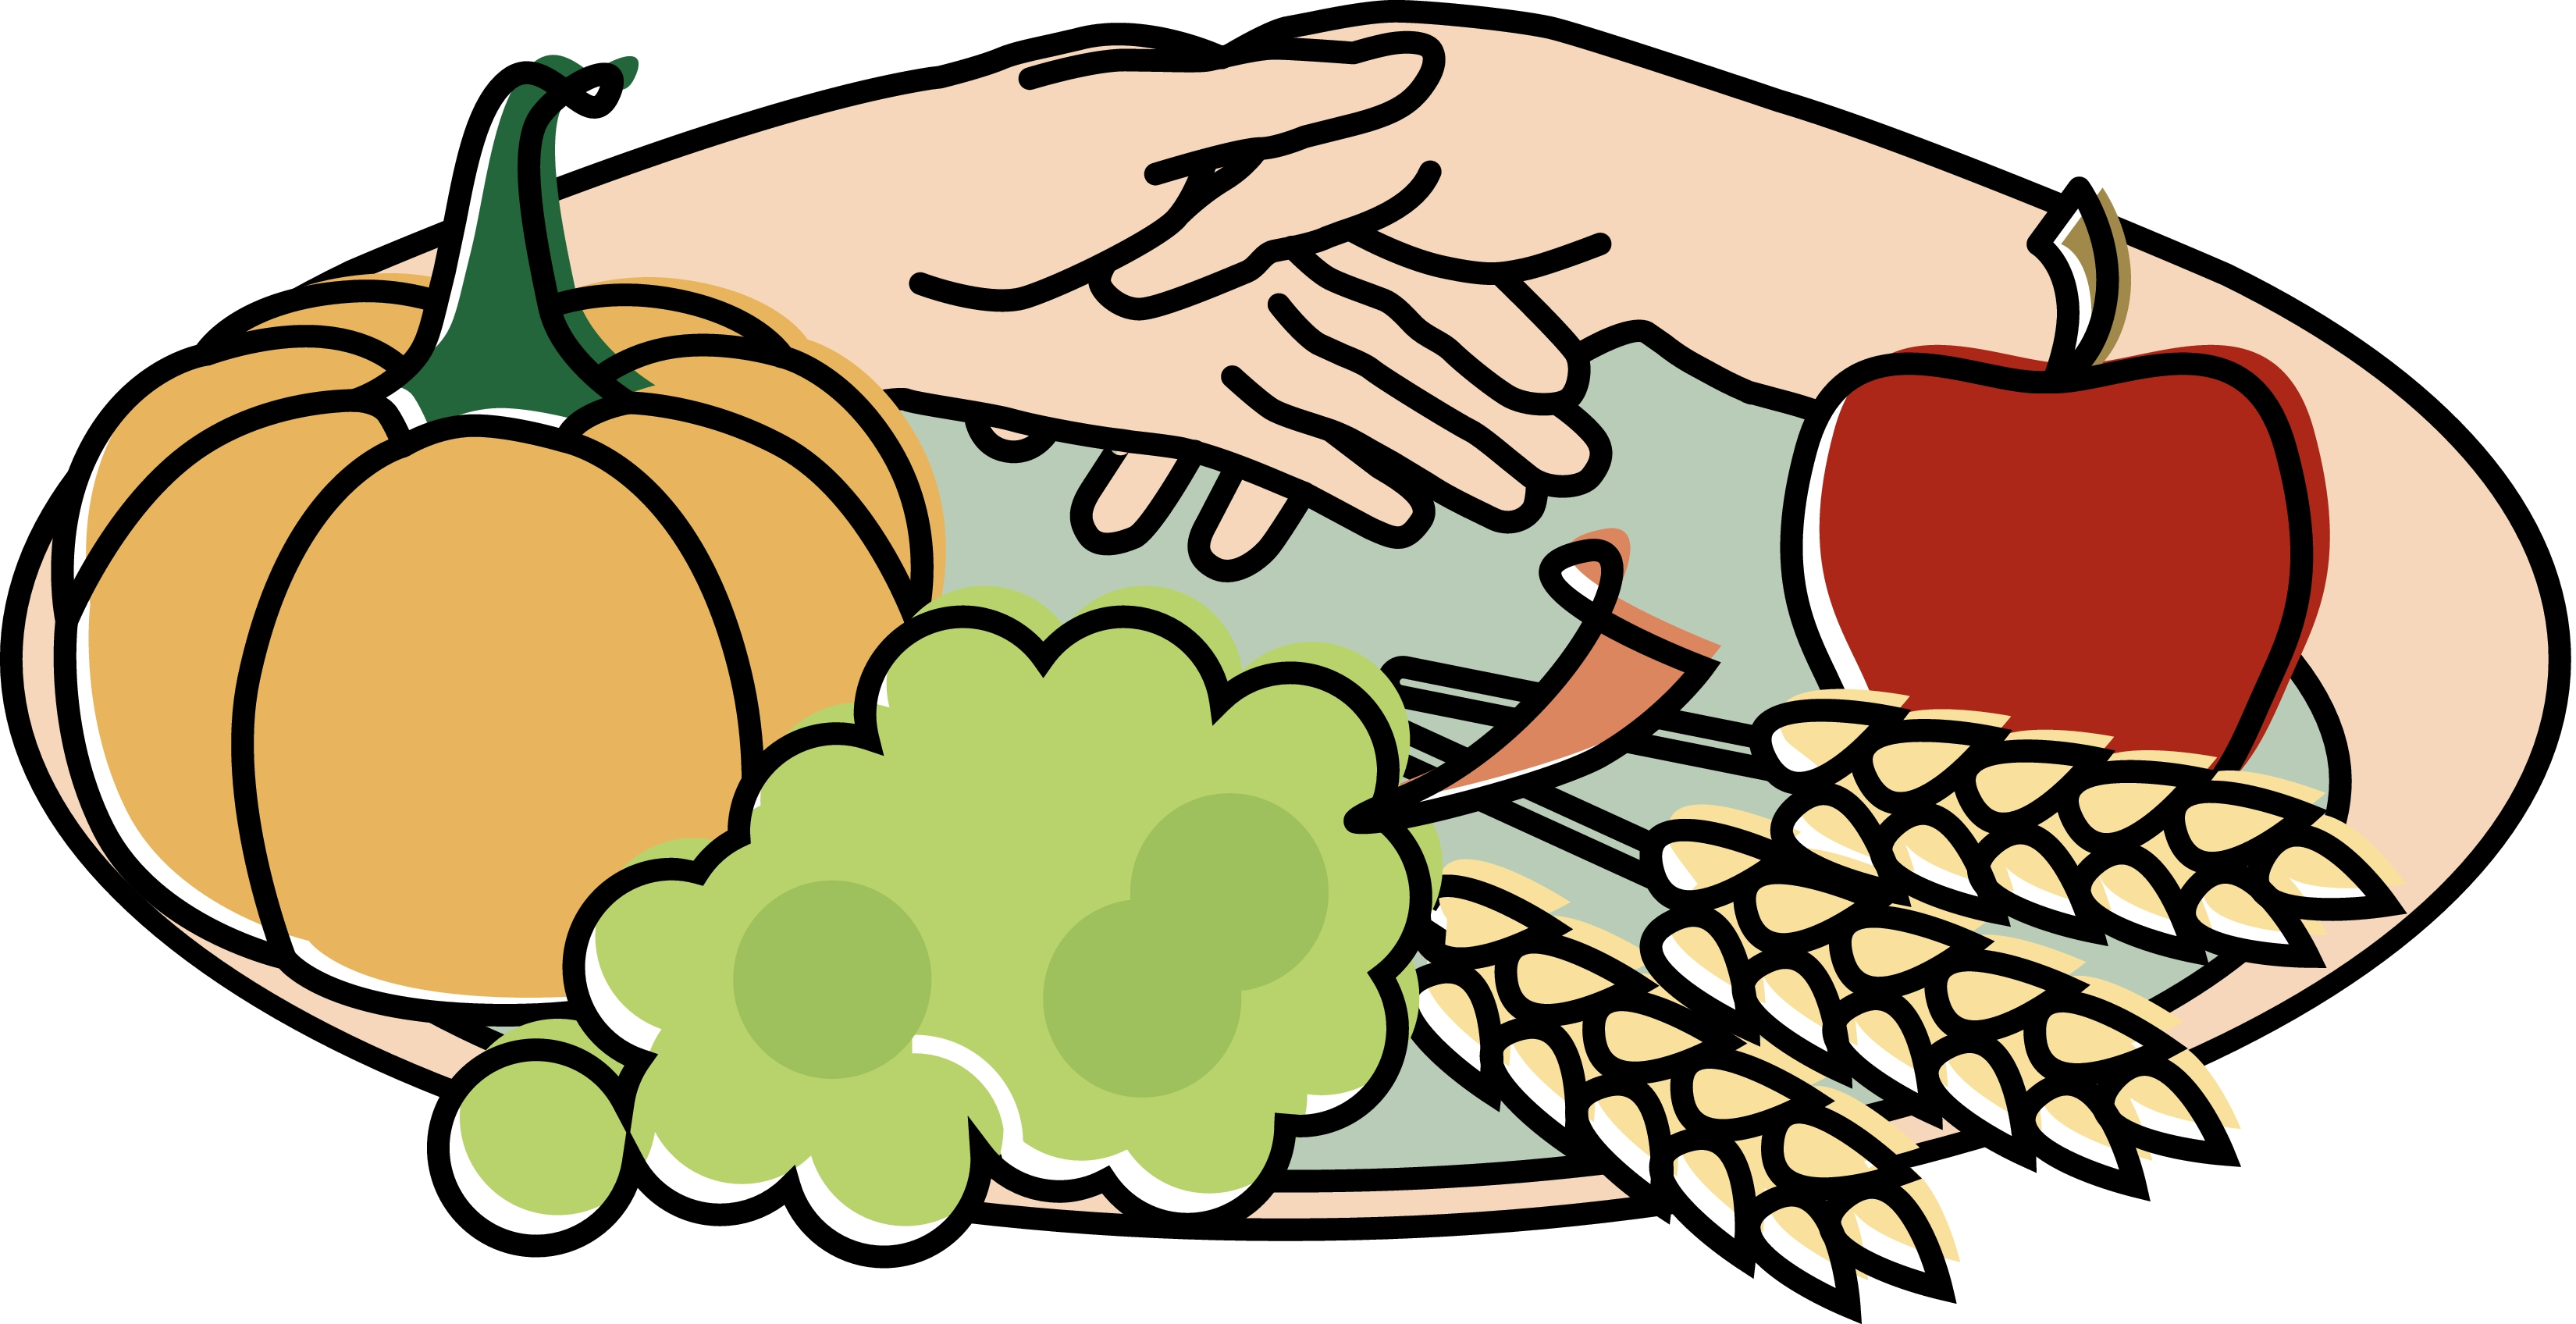 Harvest supper clipart.